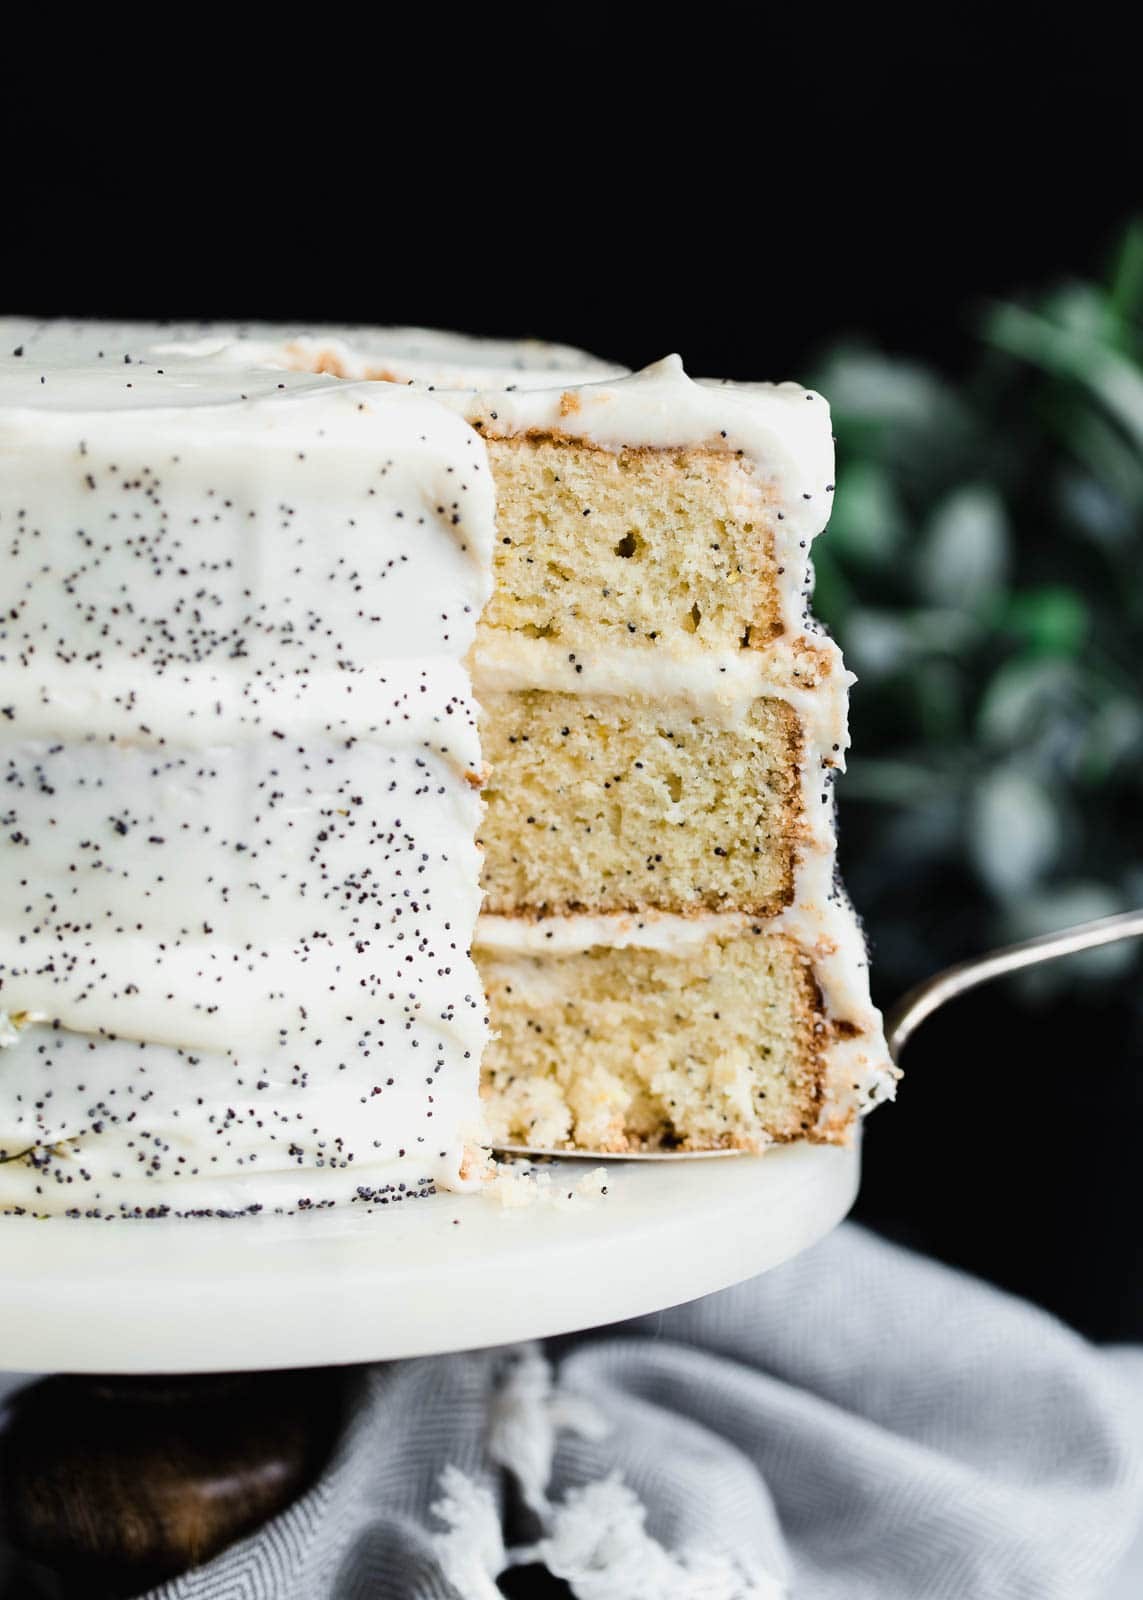 Lemon Poppyseed Cake Broma Bakery